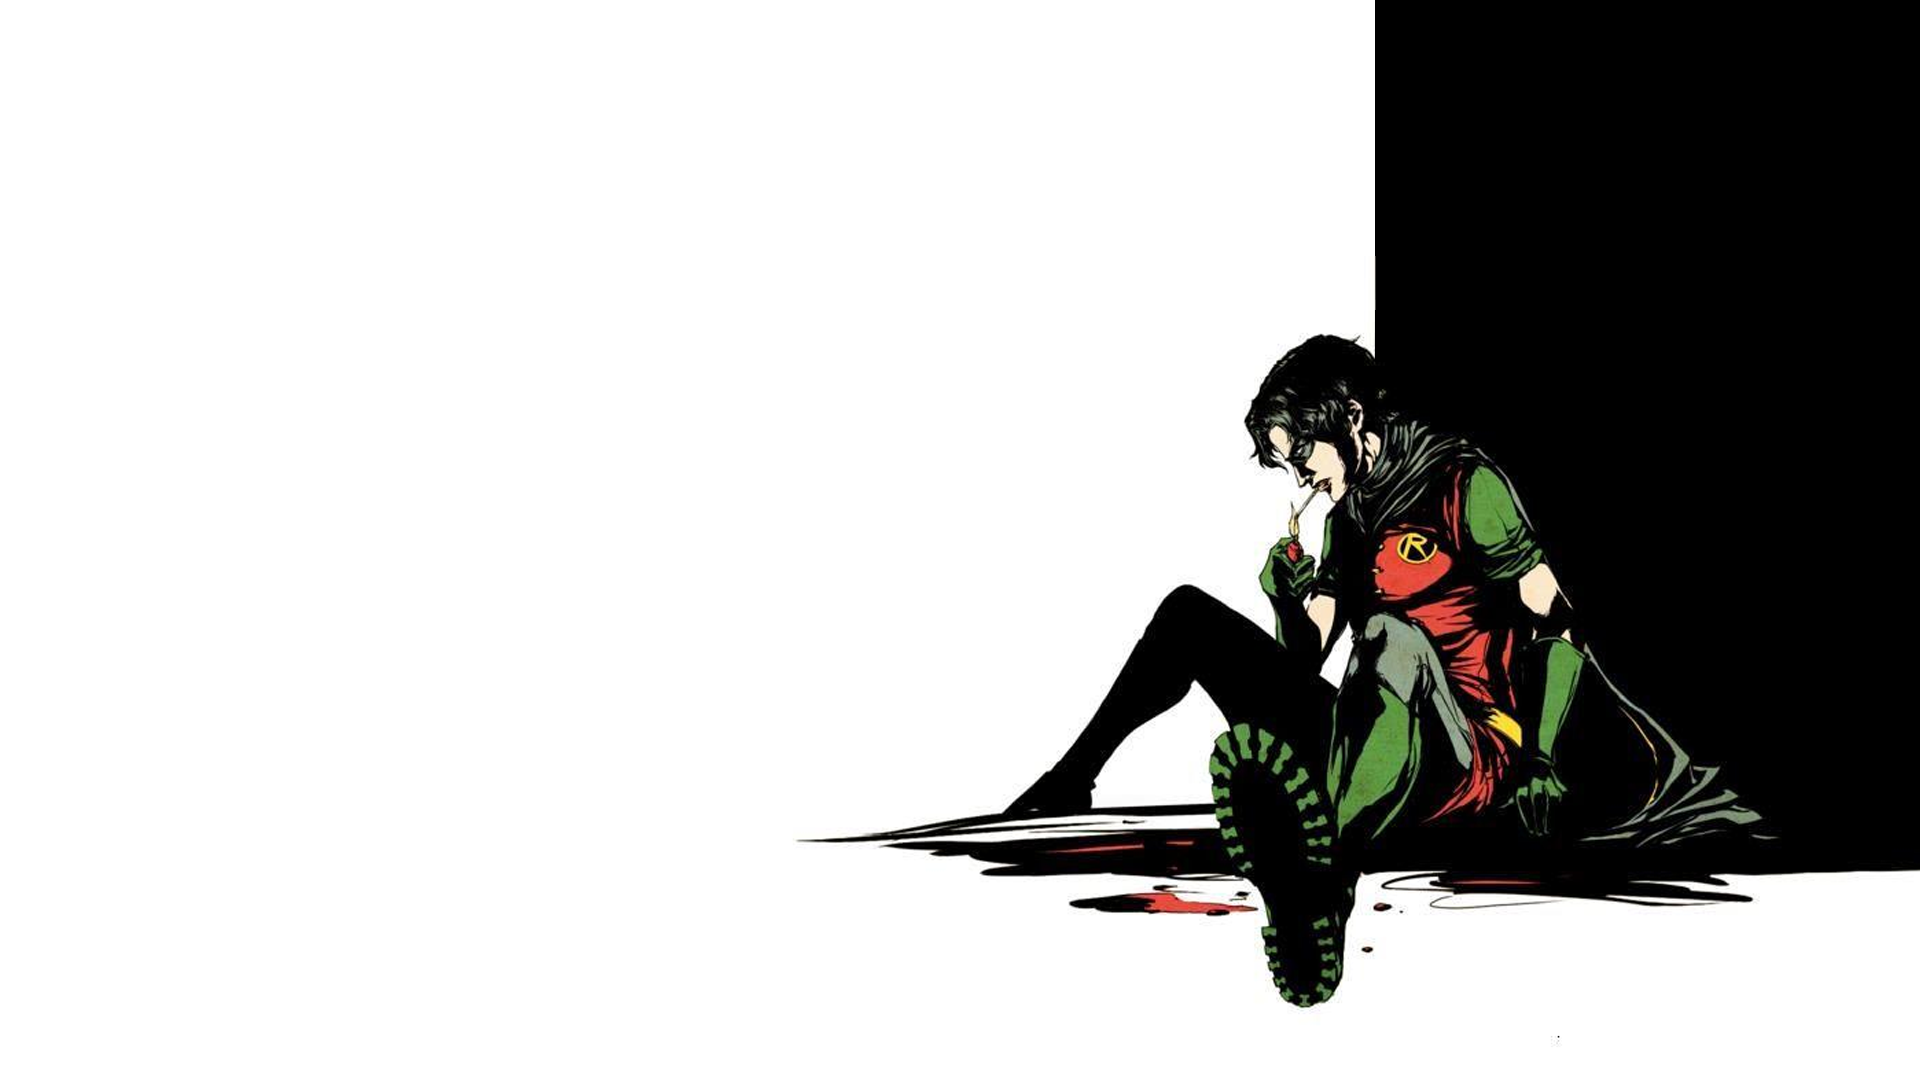 Collection of Robin Widescreen Wallpapers: 27124431, 1920x1080 px